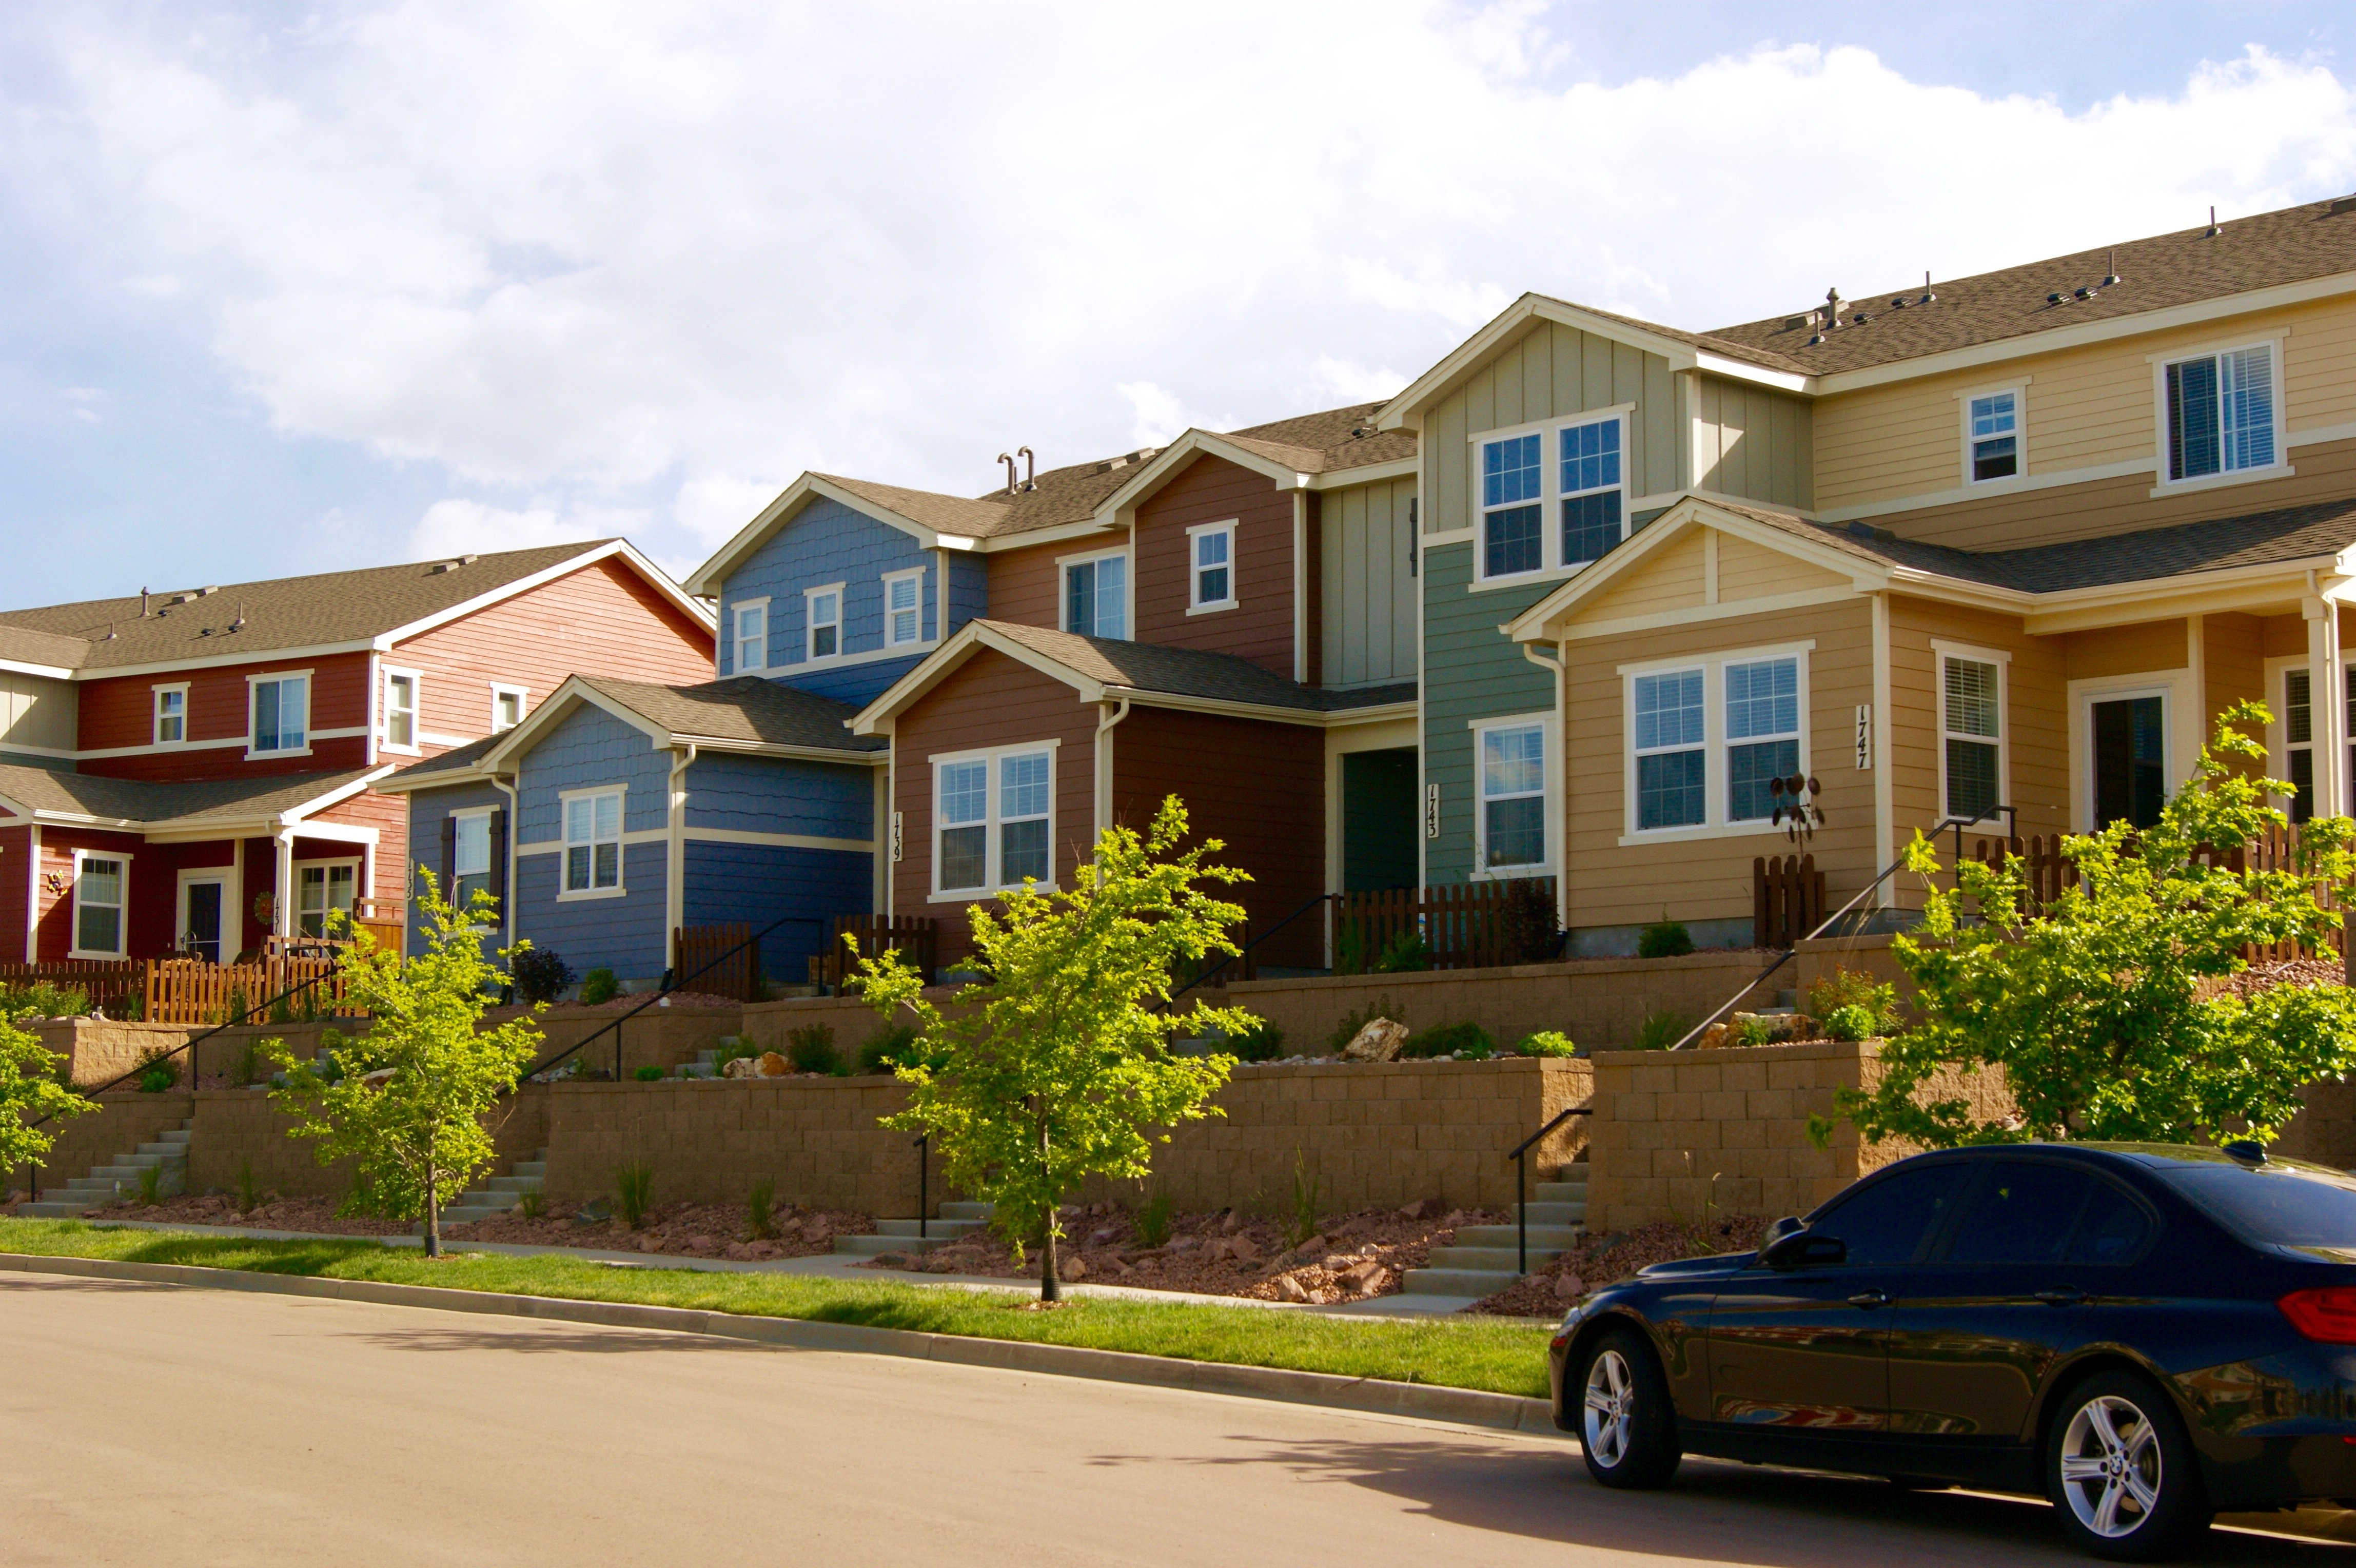 condo vs townhouse what 39 s the difference colorado springs real estatecolorado springs real. Black Bedroom Furniture Sets. Home Design Ideas